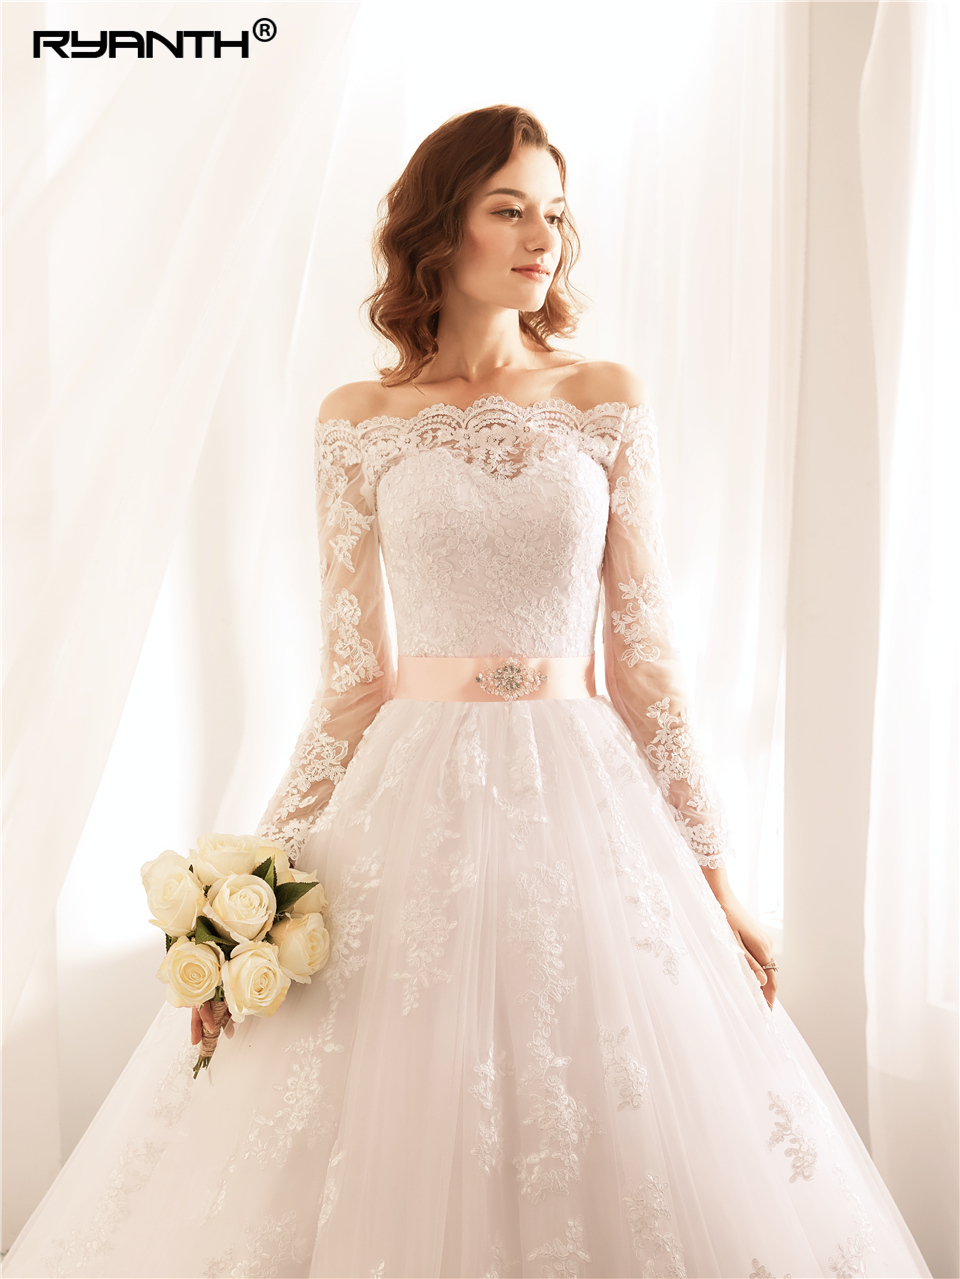 Ryanth Robe De Mariee Ball Gown Wedding Dresses Lace Vestidos de Novia Sexy Luxury Long Sleeve Bride Wedding Gown Trouwjurk 2018